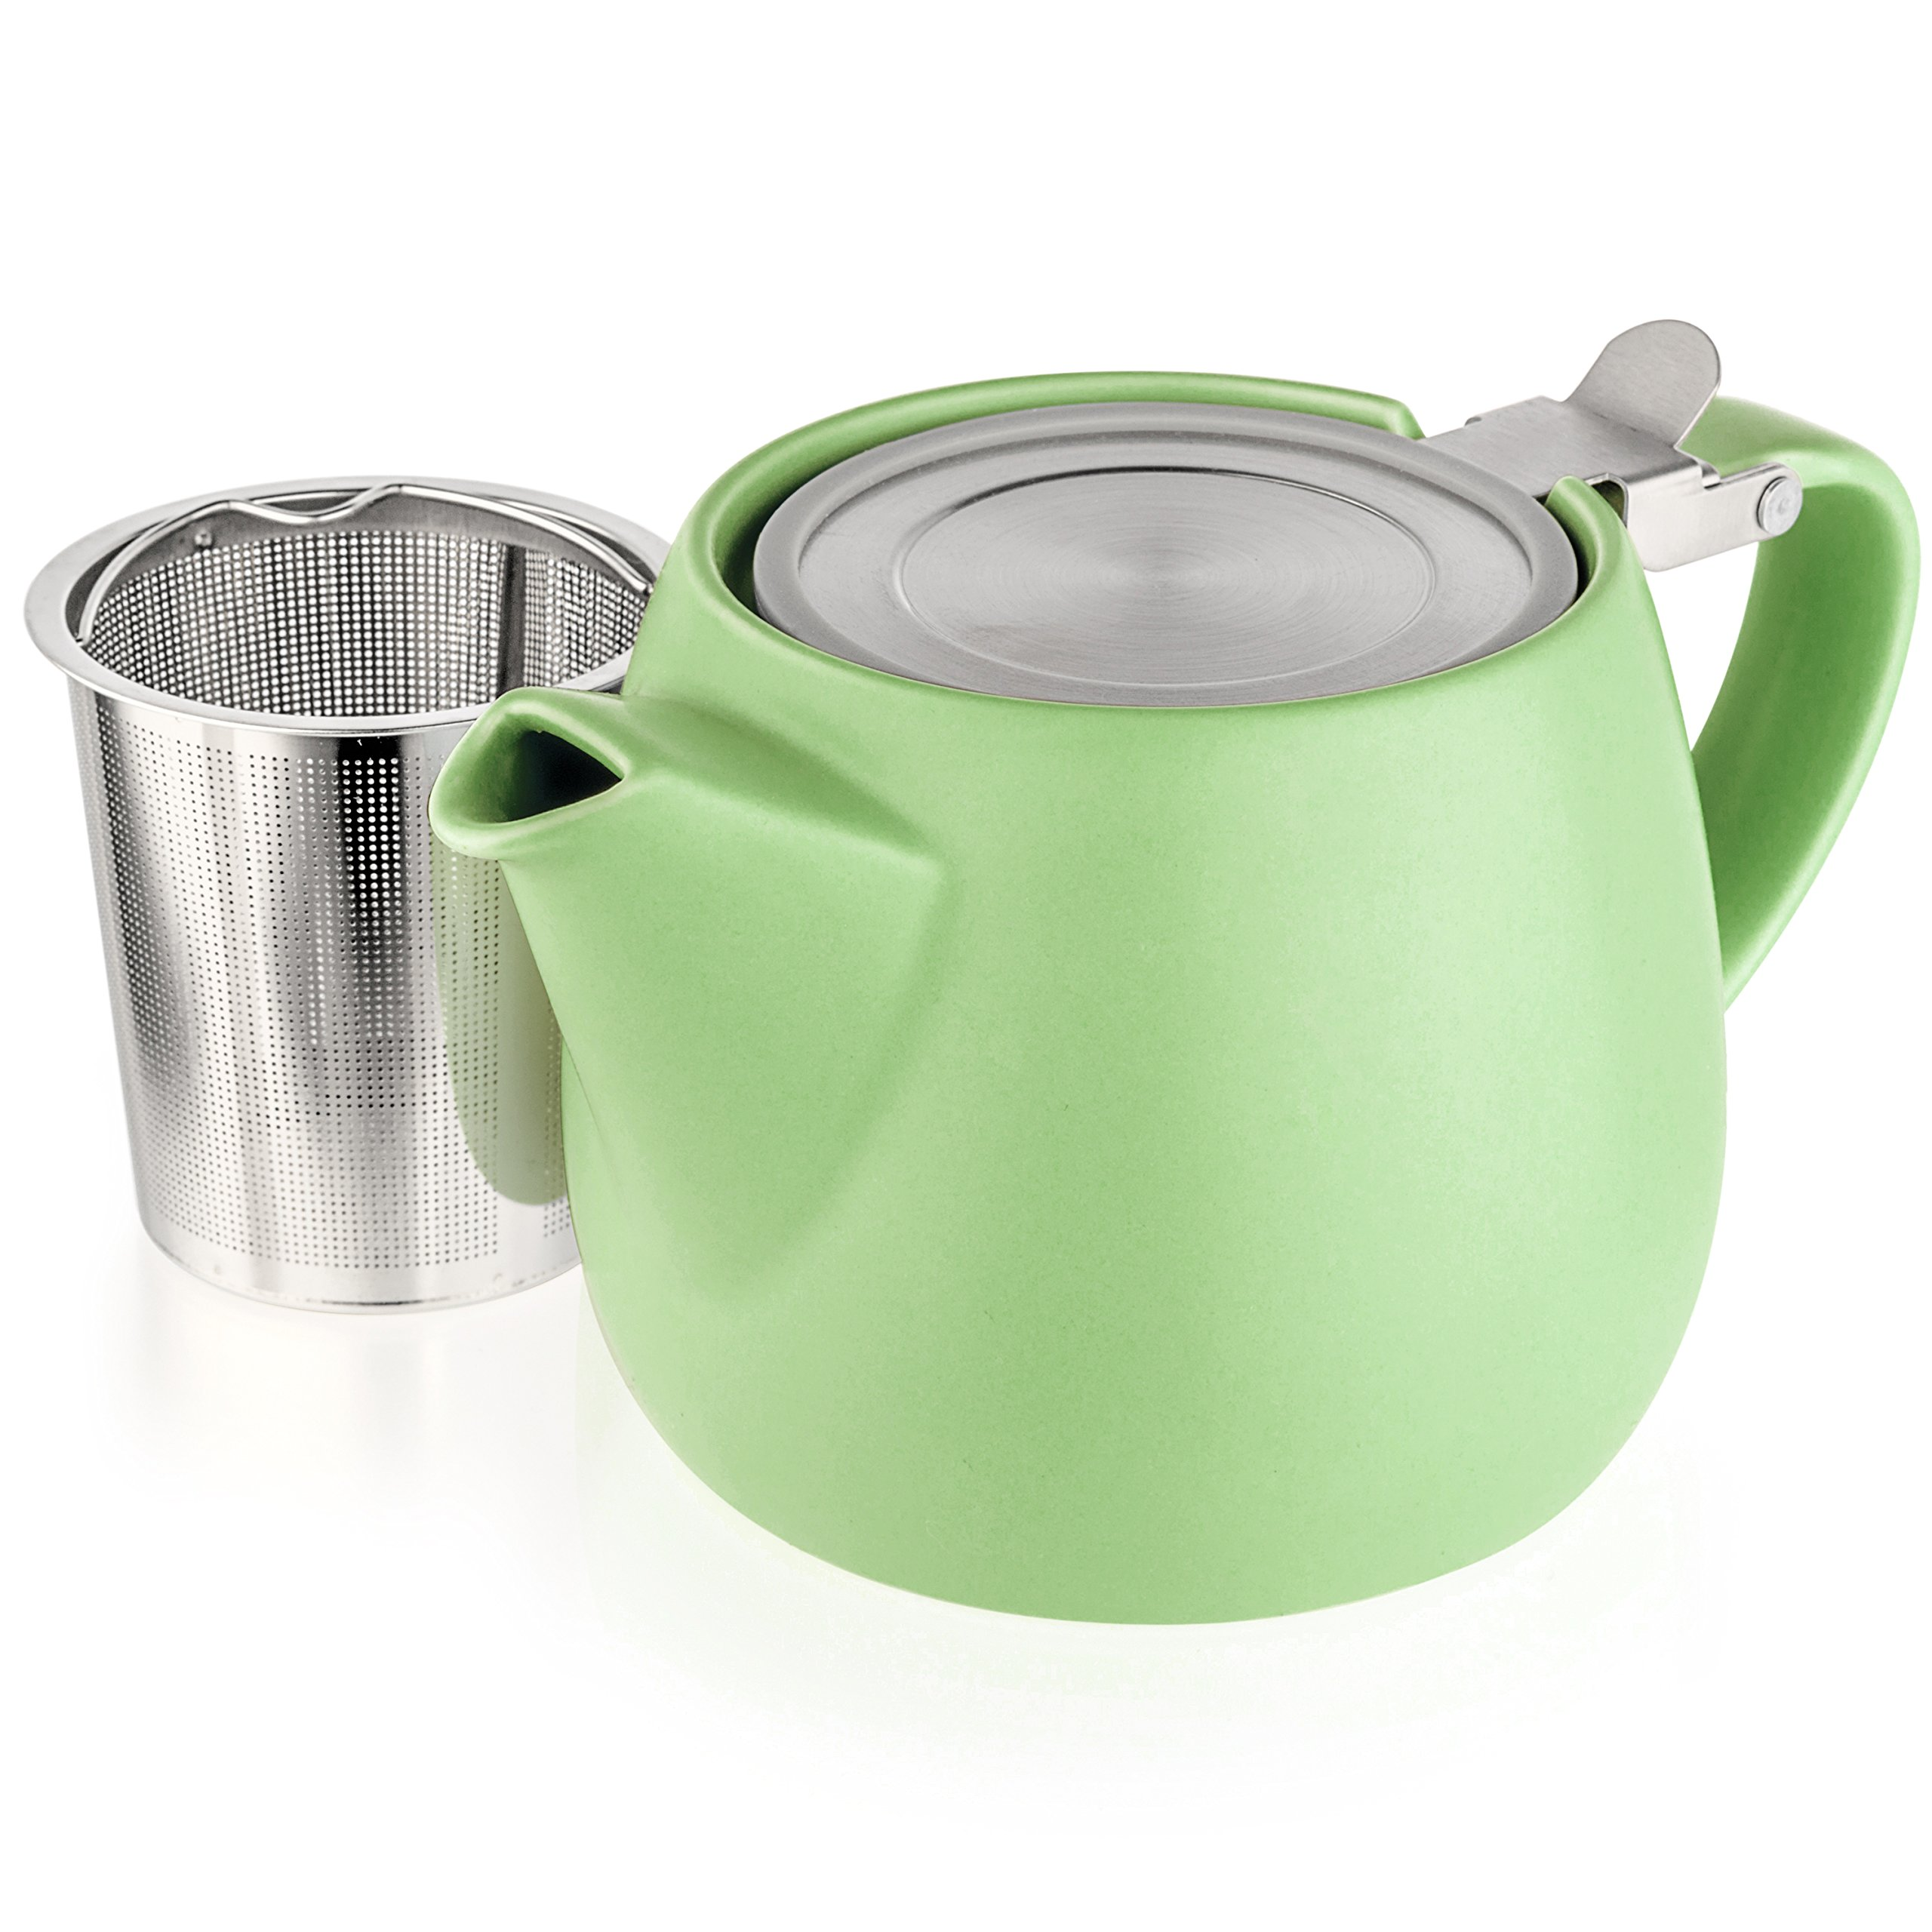 Tealyra - Pluto Porcelain Small Teapot Lime - 18.2-ounce (1-2 cups) - Matte Finish - Stainless Steel Lid and Extra-Fine Infuser To Brew Loose Leaf Tea - Ceramic Tea Brewer - 540ml